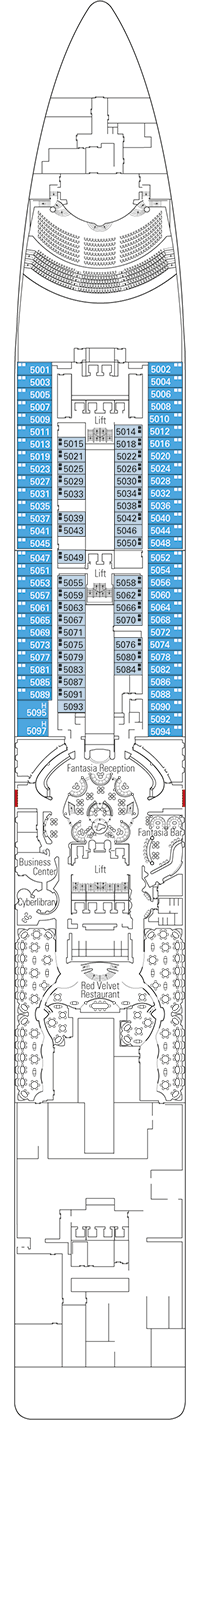 Fantasia Deck Plan